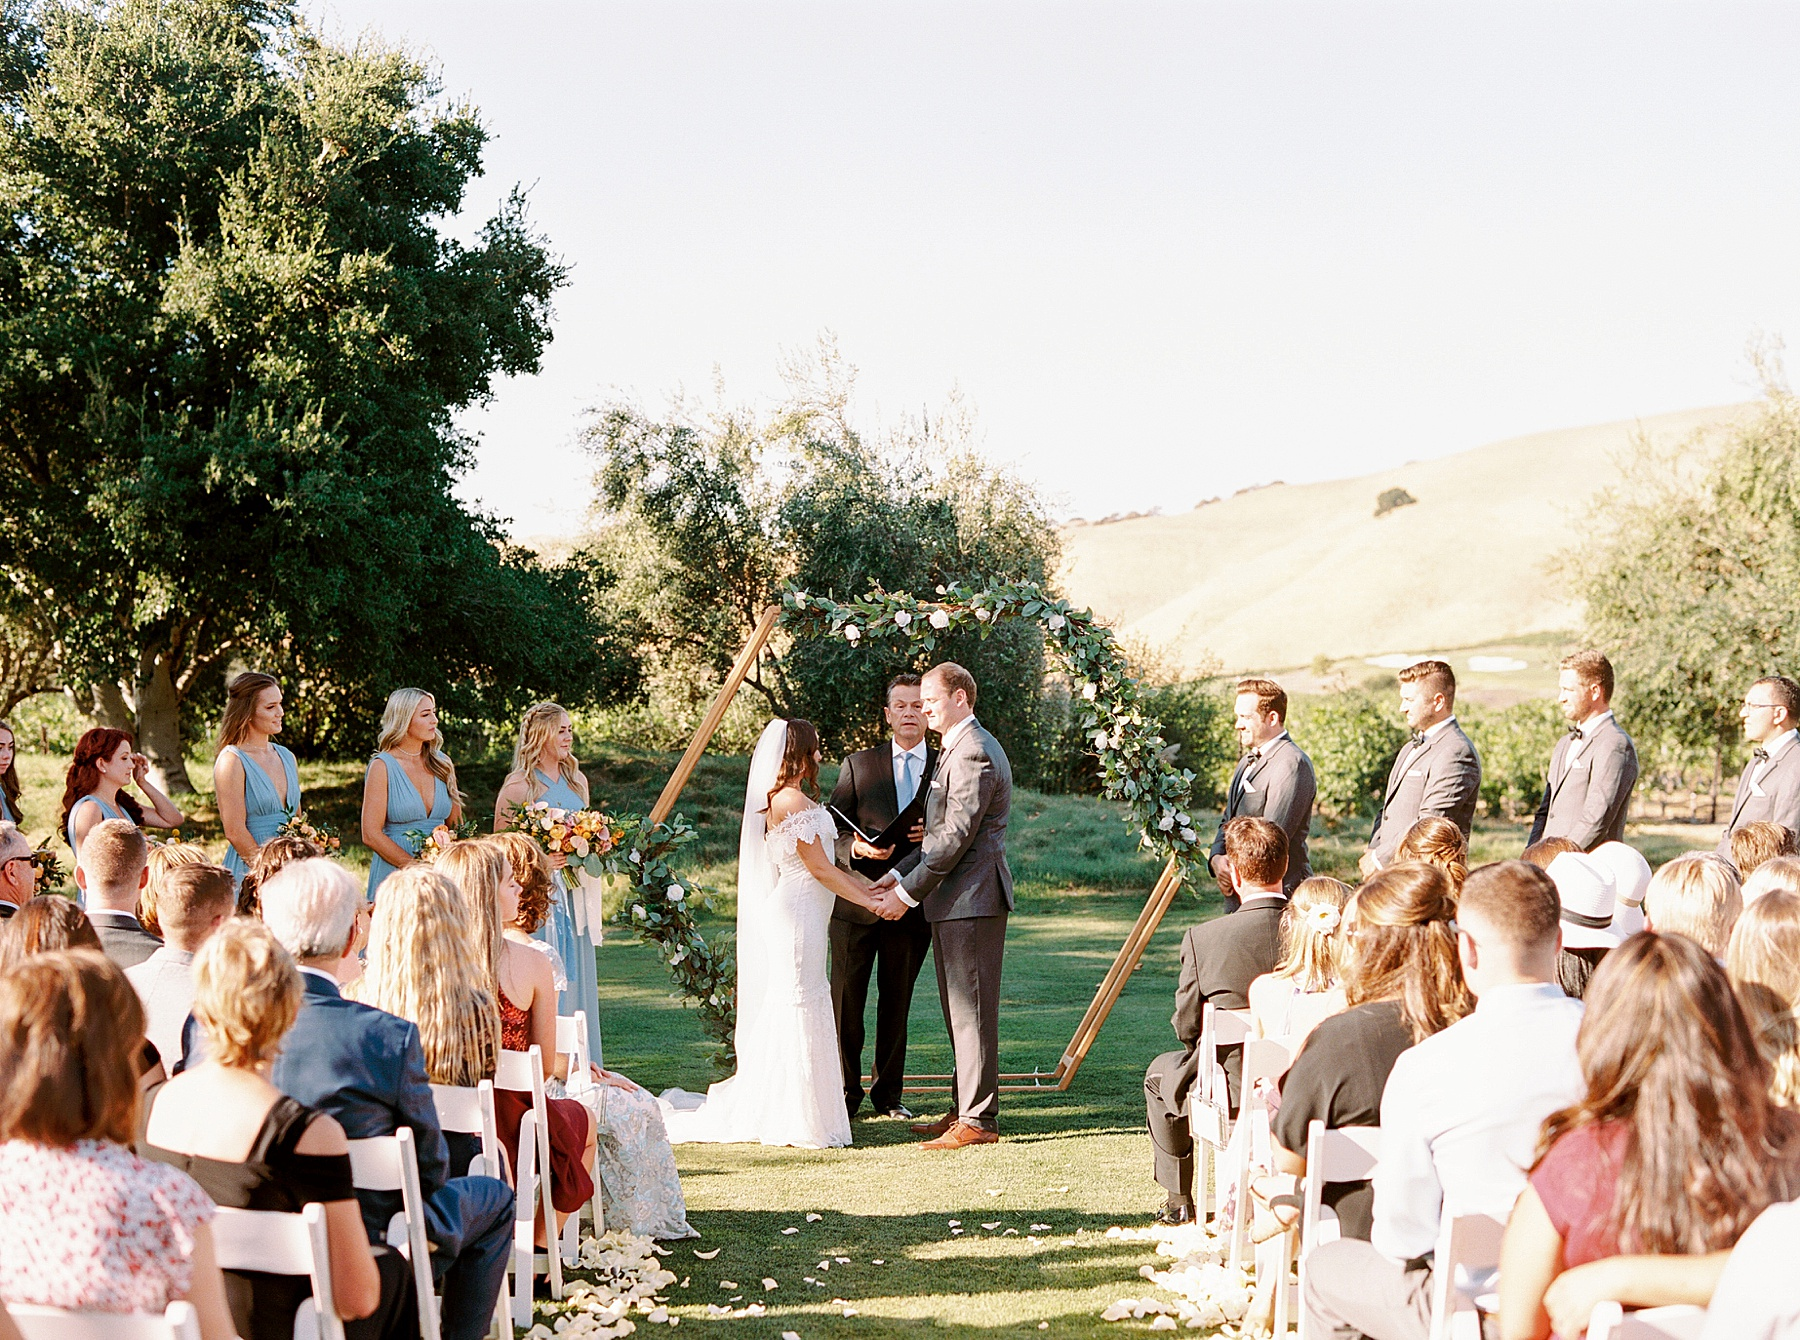 Wente Wedding with A Tropical Color Palette - Ashley & Mike - Featured on Inspired by This - Ashley Baumgartner_0024.jpg